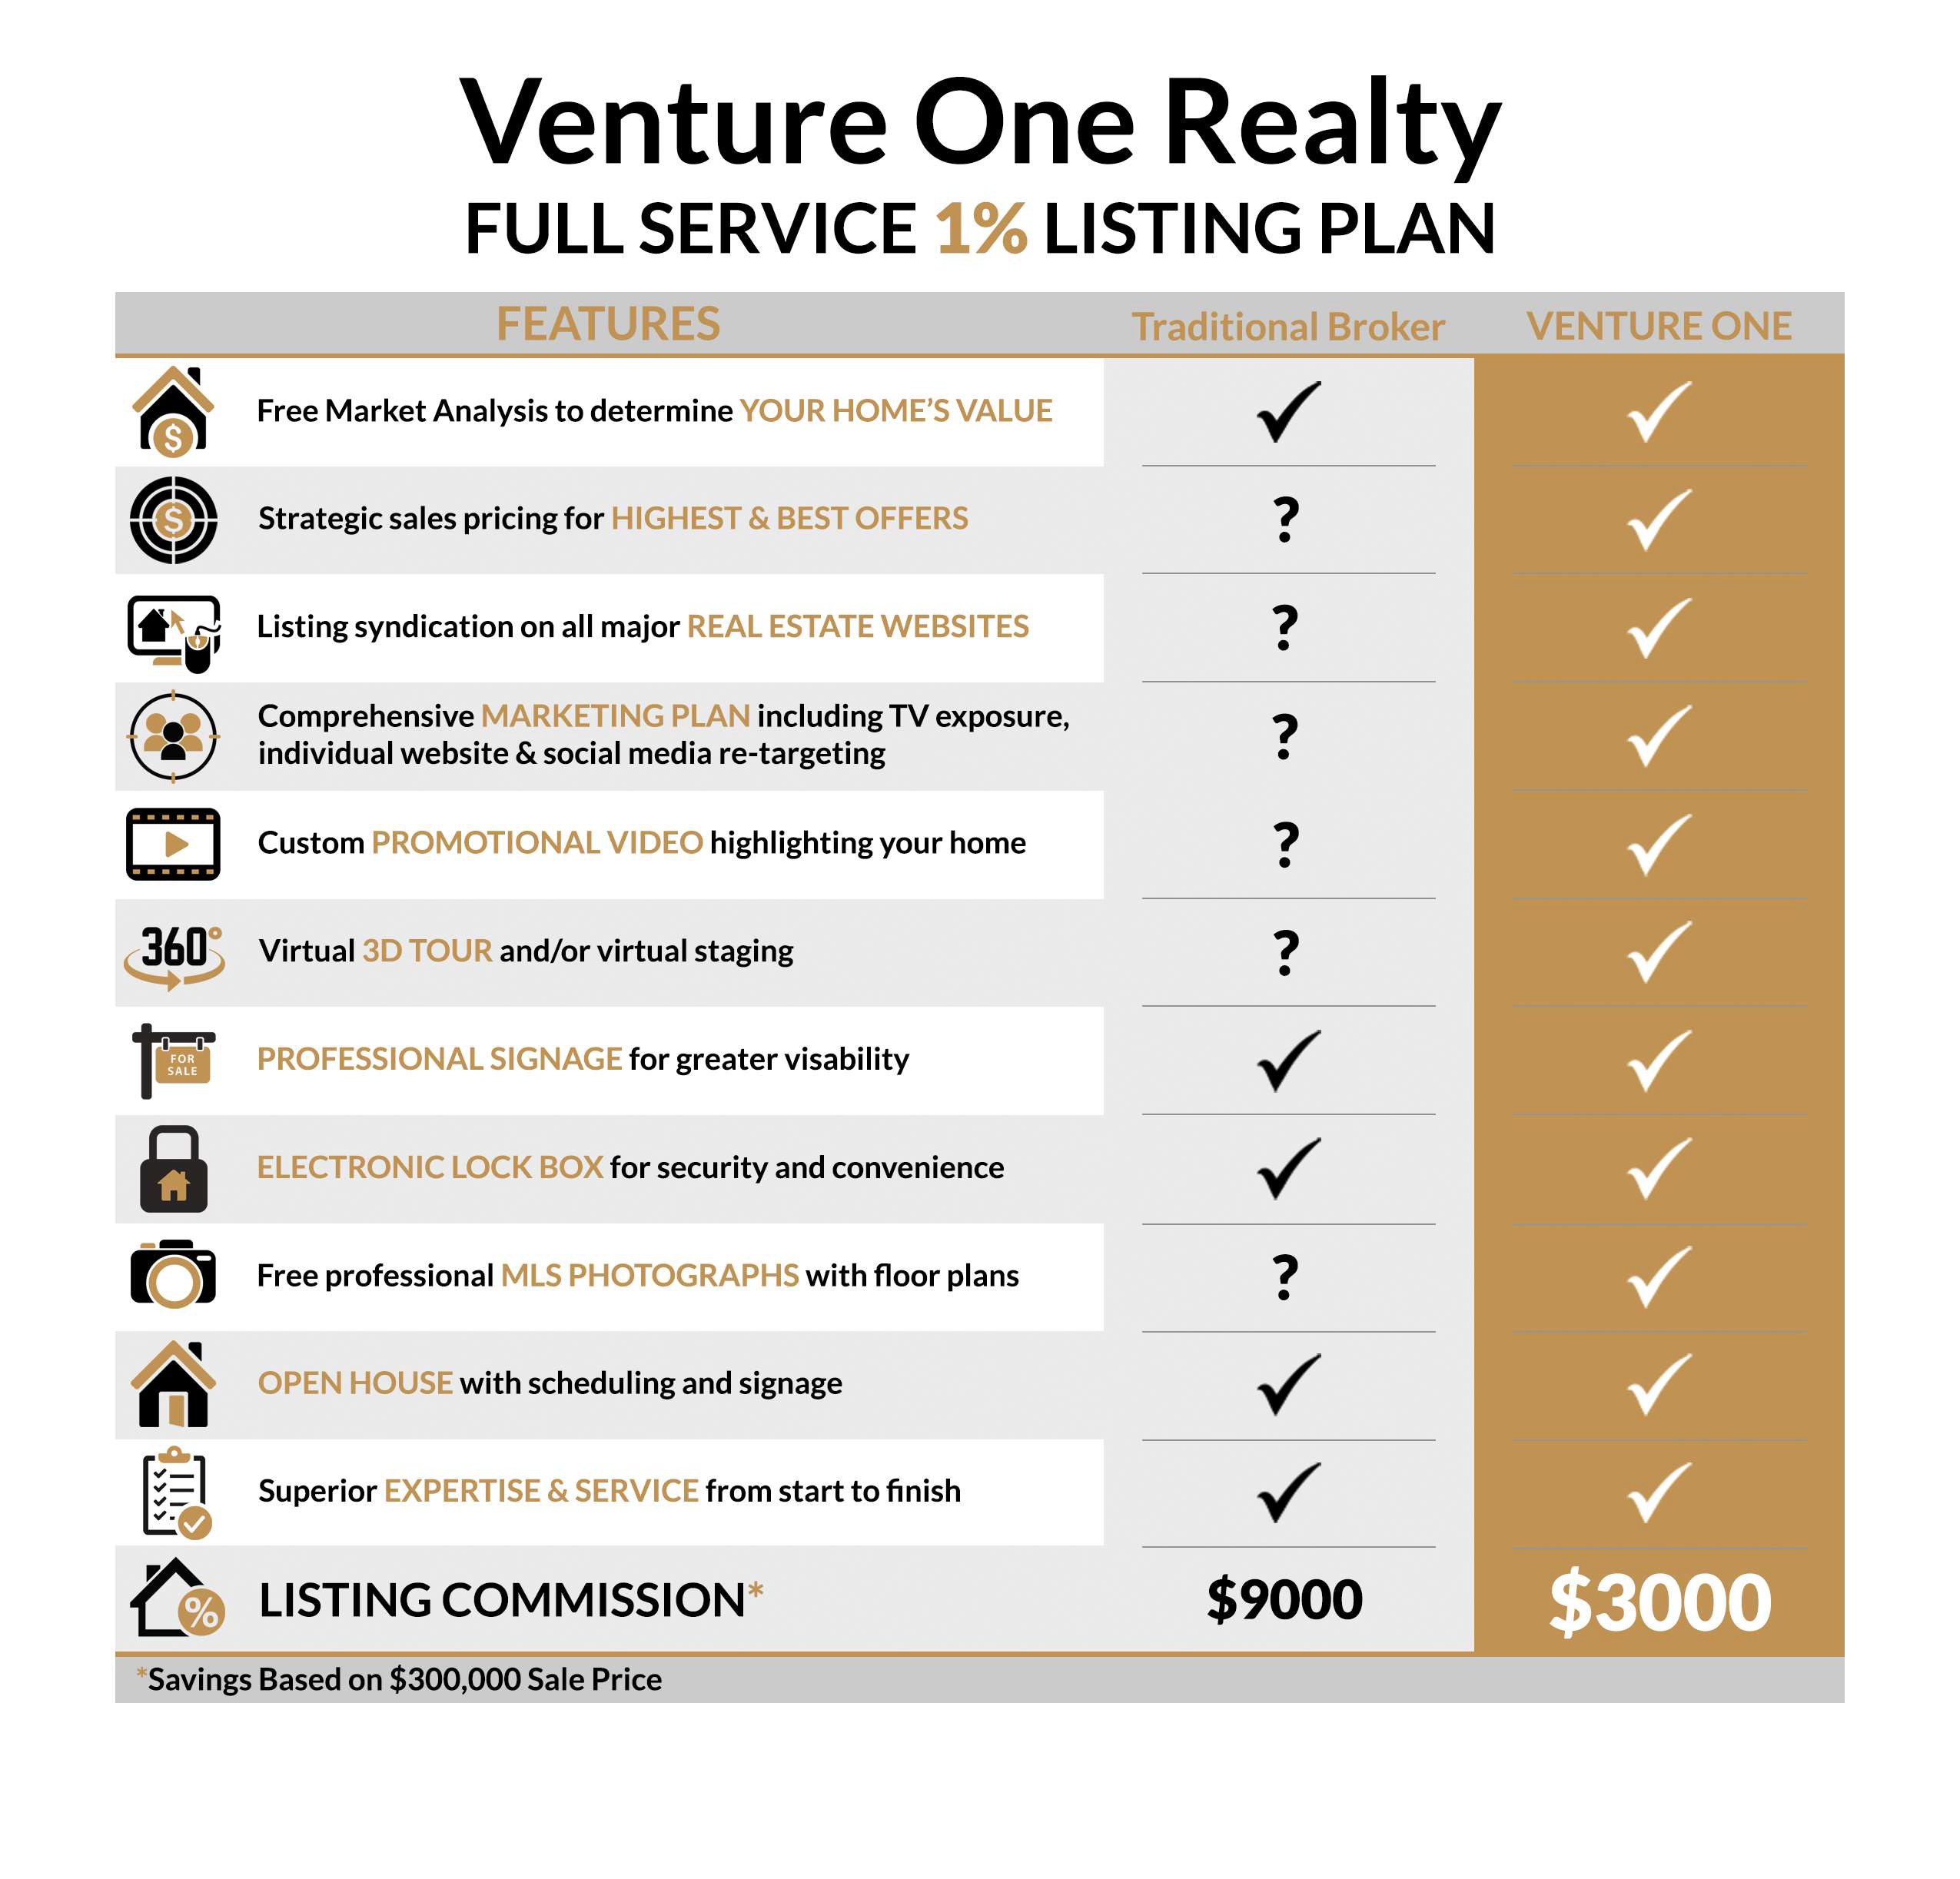 Venture One Realty Comparison chart